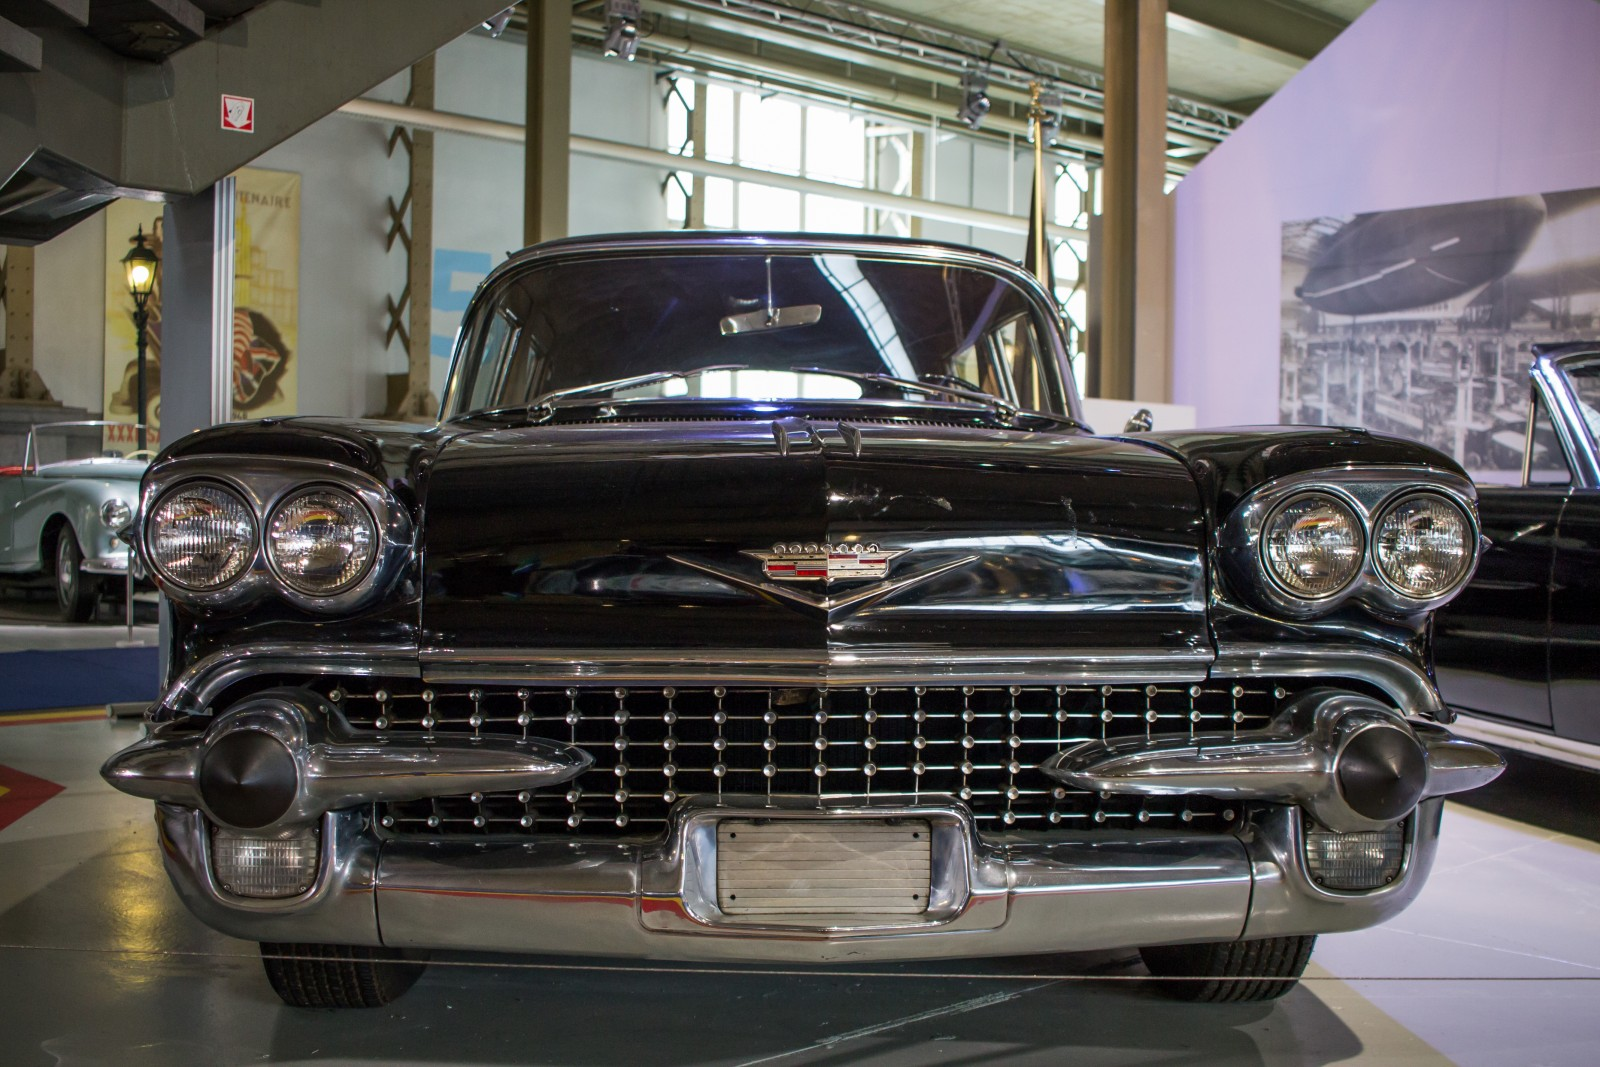 Cadillac on display in the Autoworld Brussels